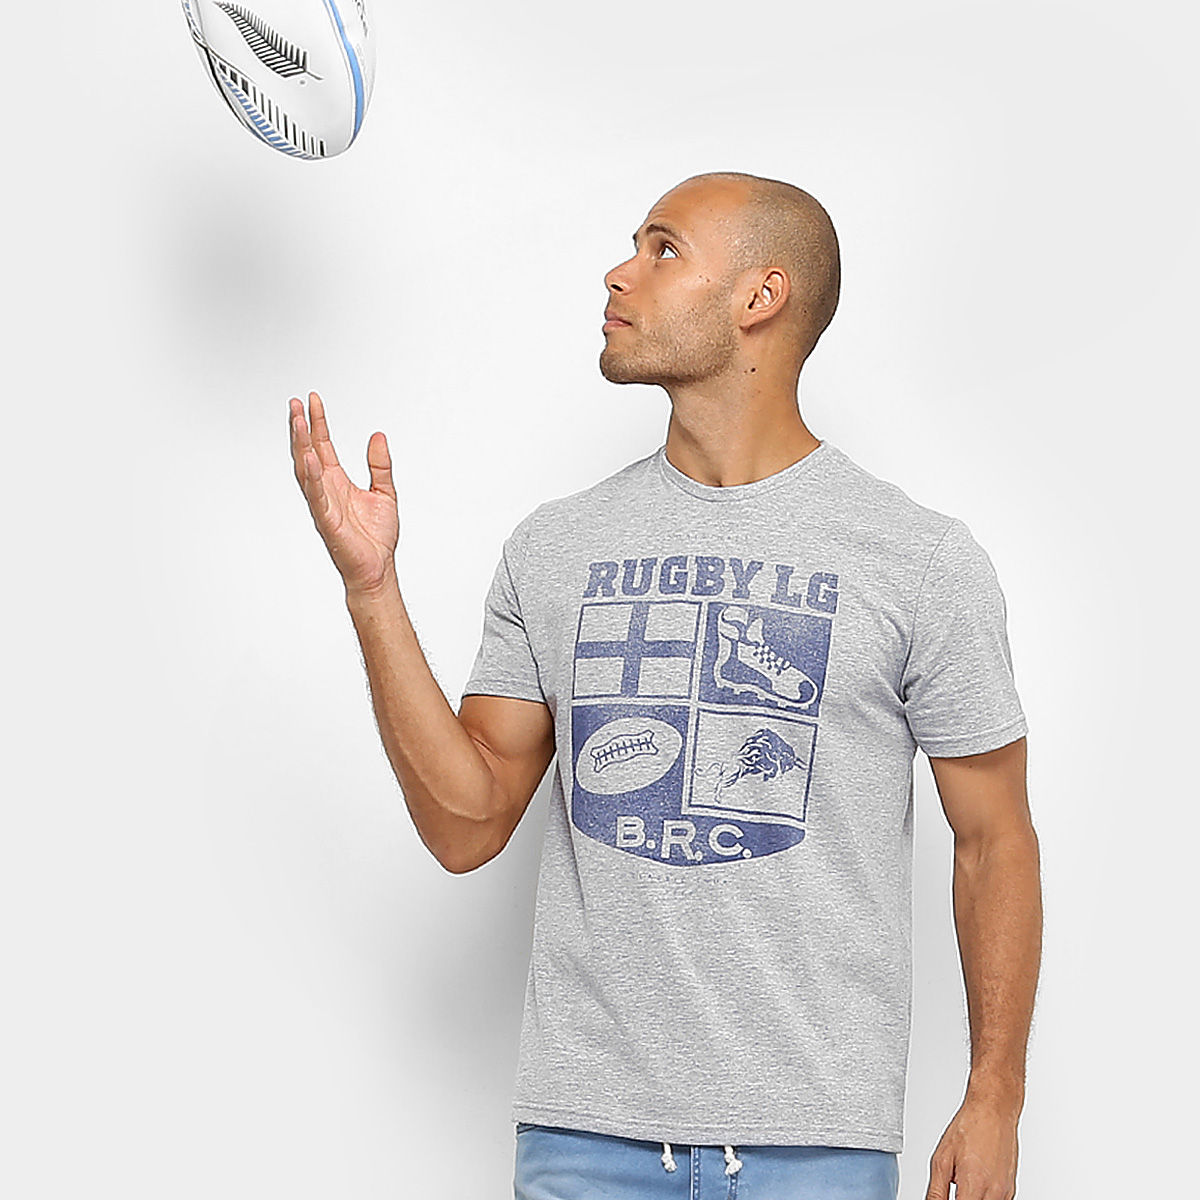 C62 1704 188 zoom1 - Camiseta GONEW Rugby College Masculina - R$ 26,91